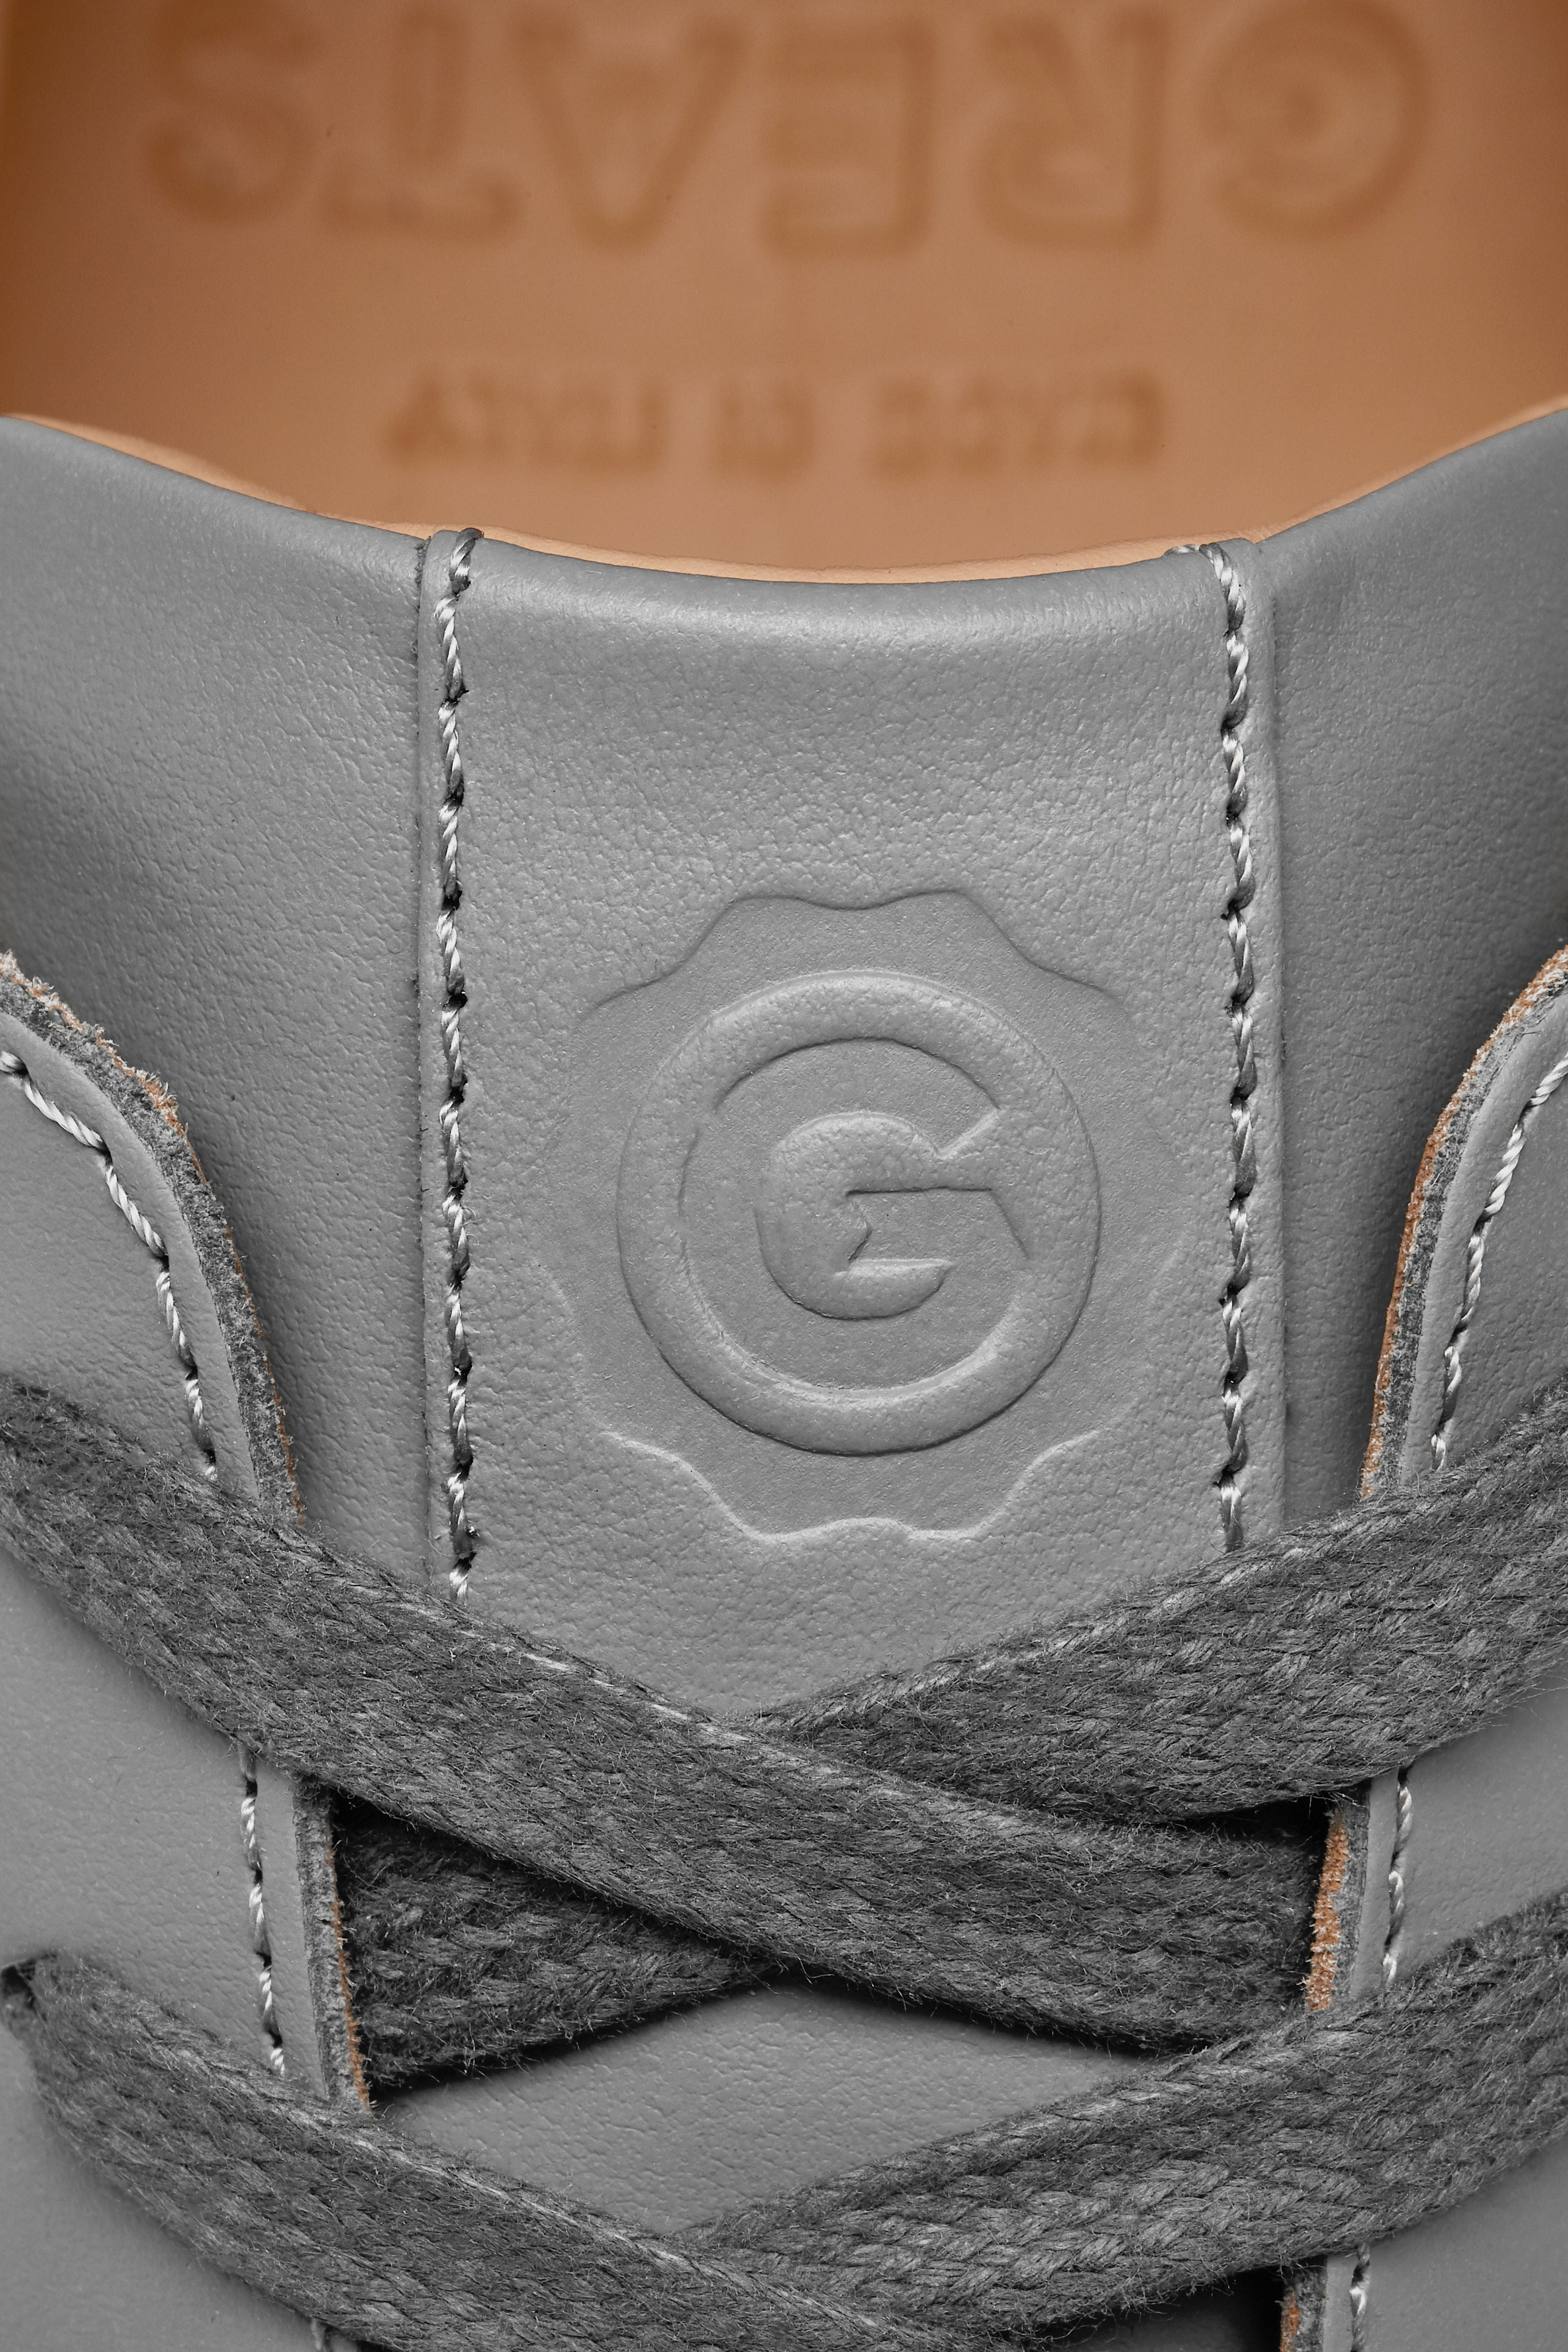 Greats - The Royale - Ash Grey Leather